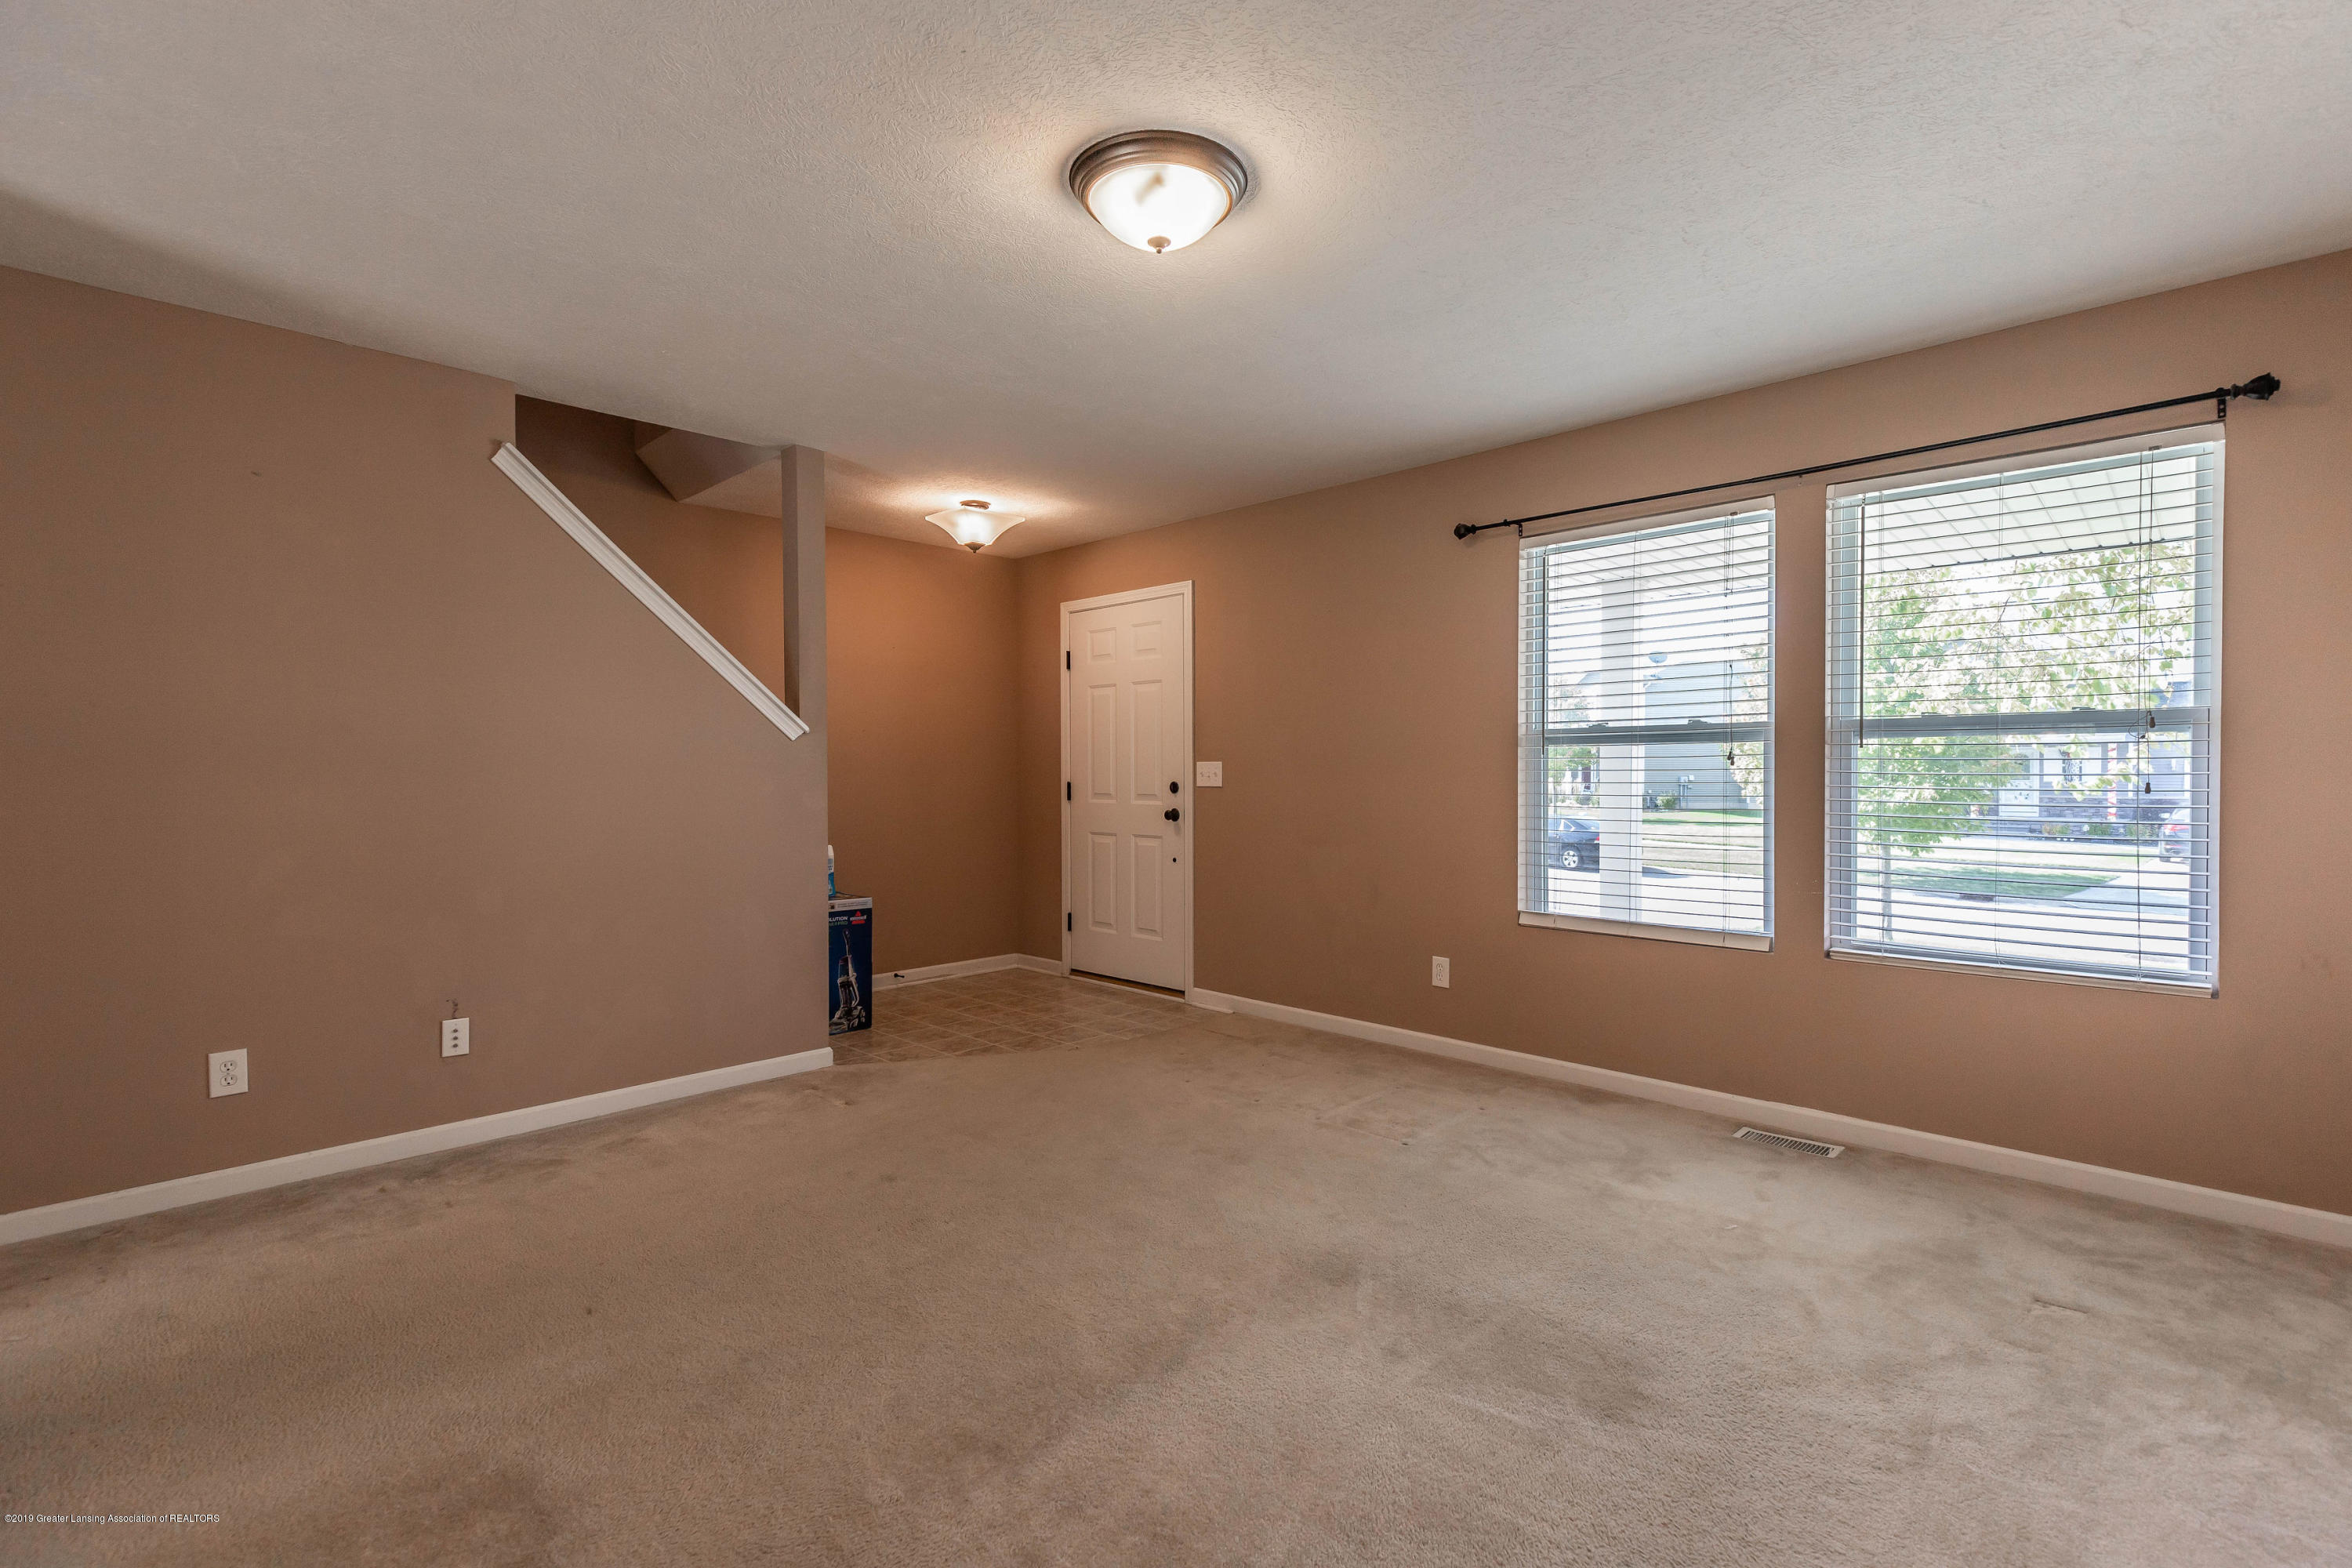 15125 Loxley Ln - loxleyliving3(1of1) - 5